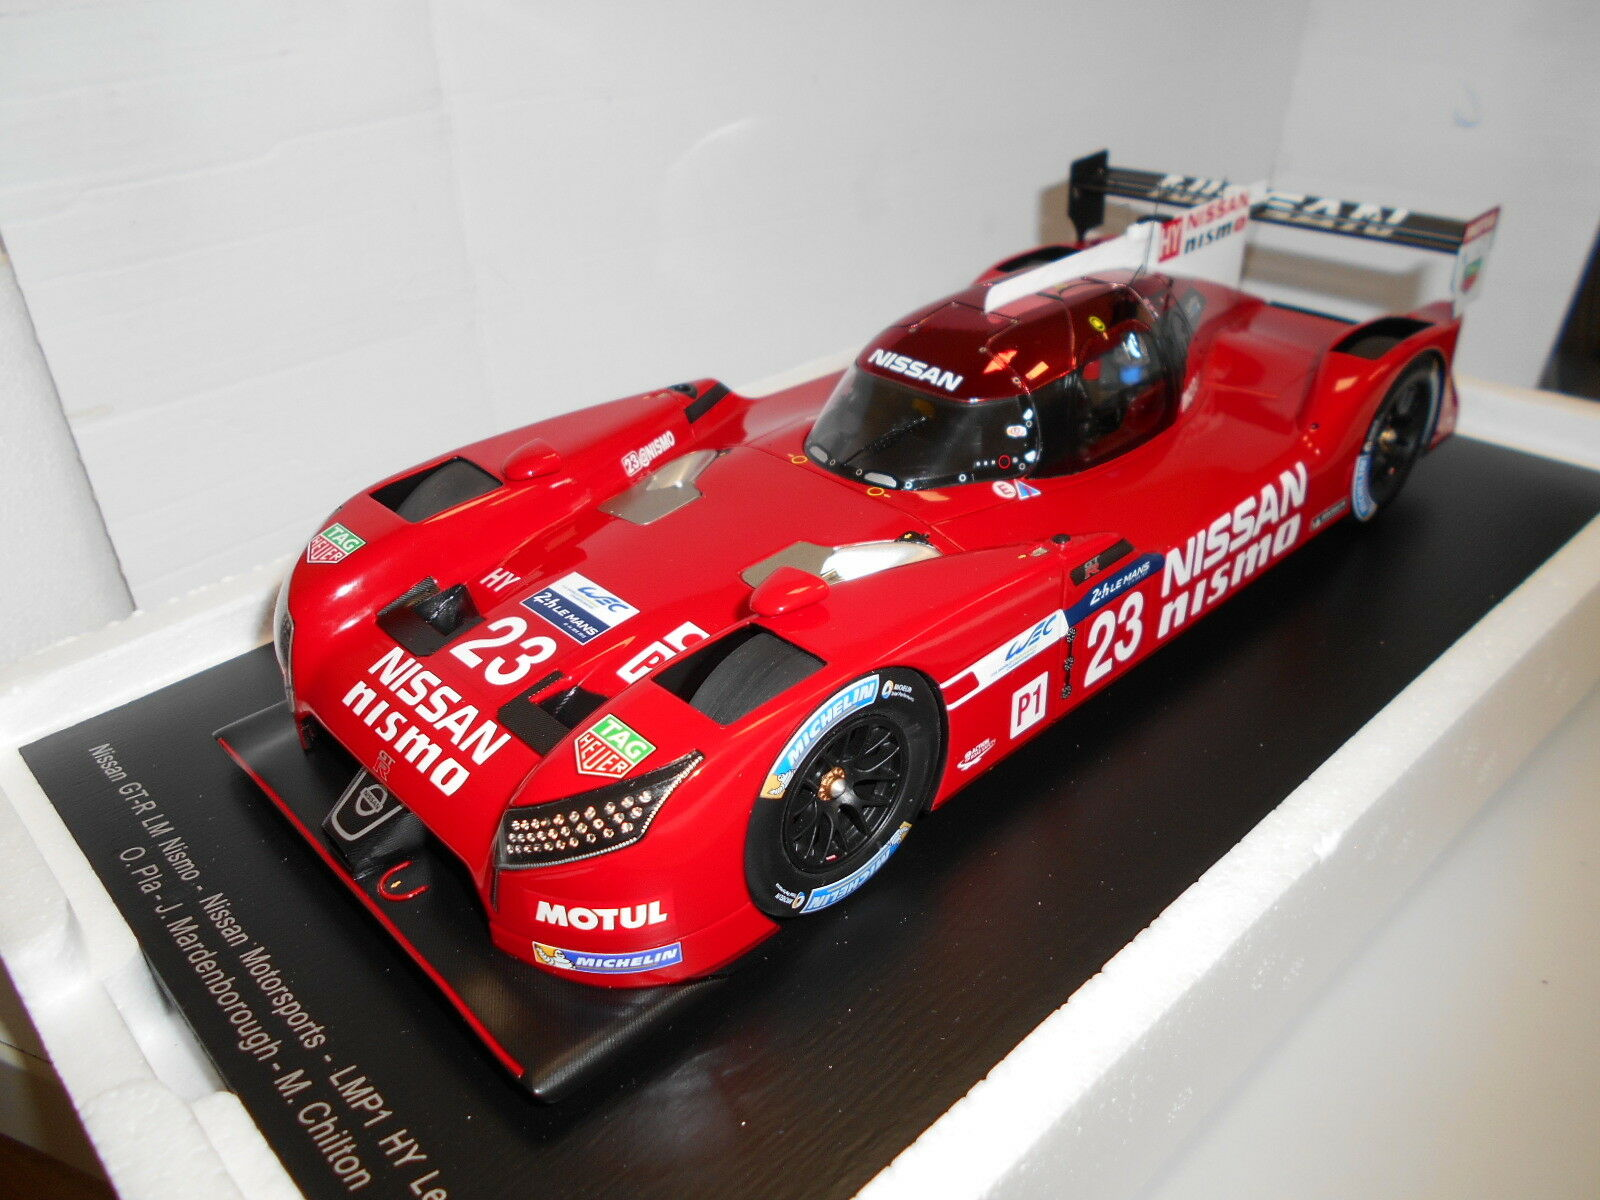 by SPARKMODEL NISSAN GT-R LM NISMO 23 2018 1:18